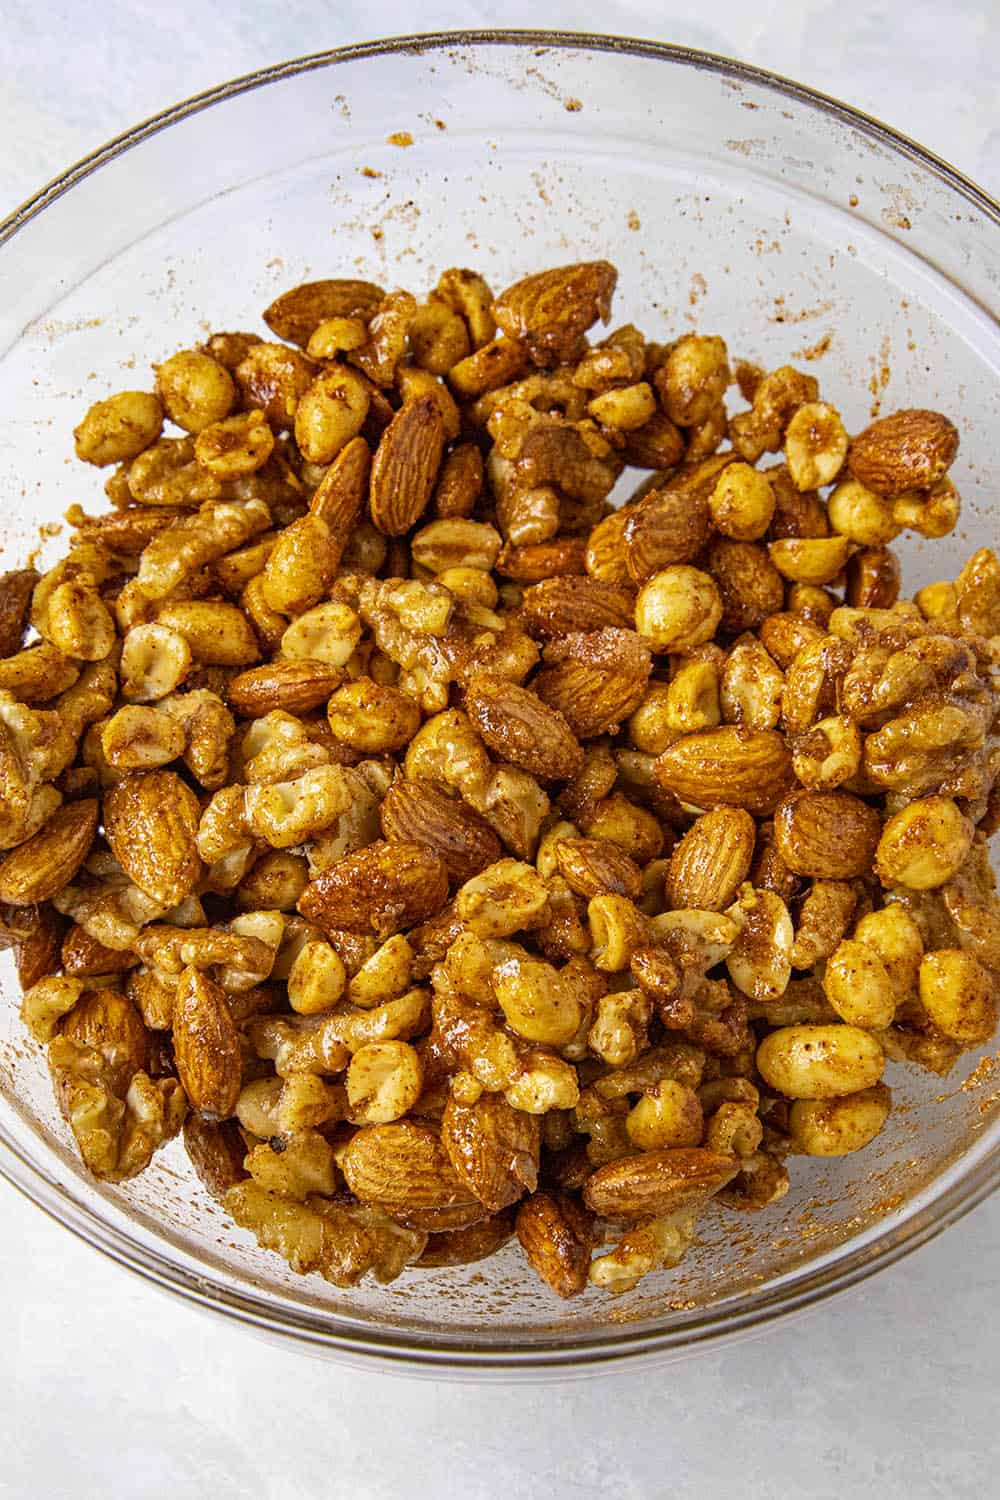 Raw nuts mixed with egg whites and seasonings, ready to bake